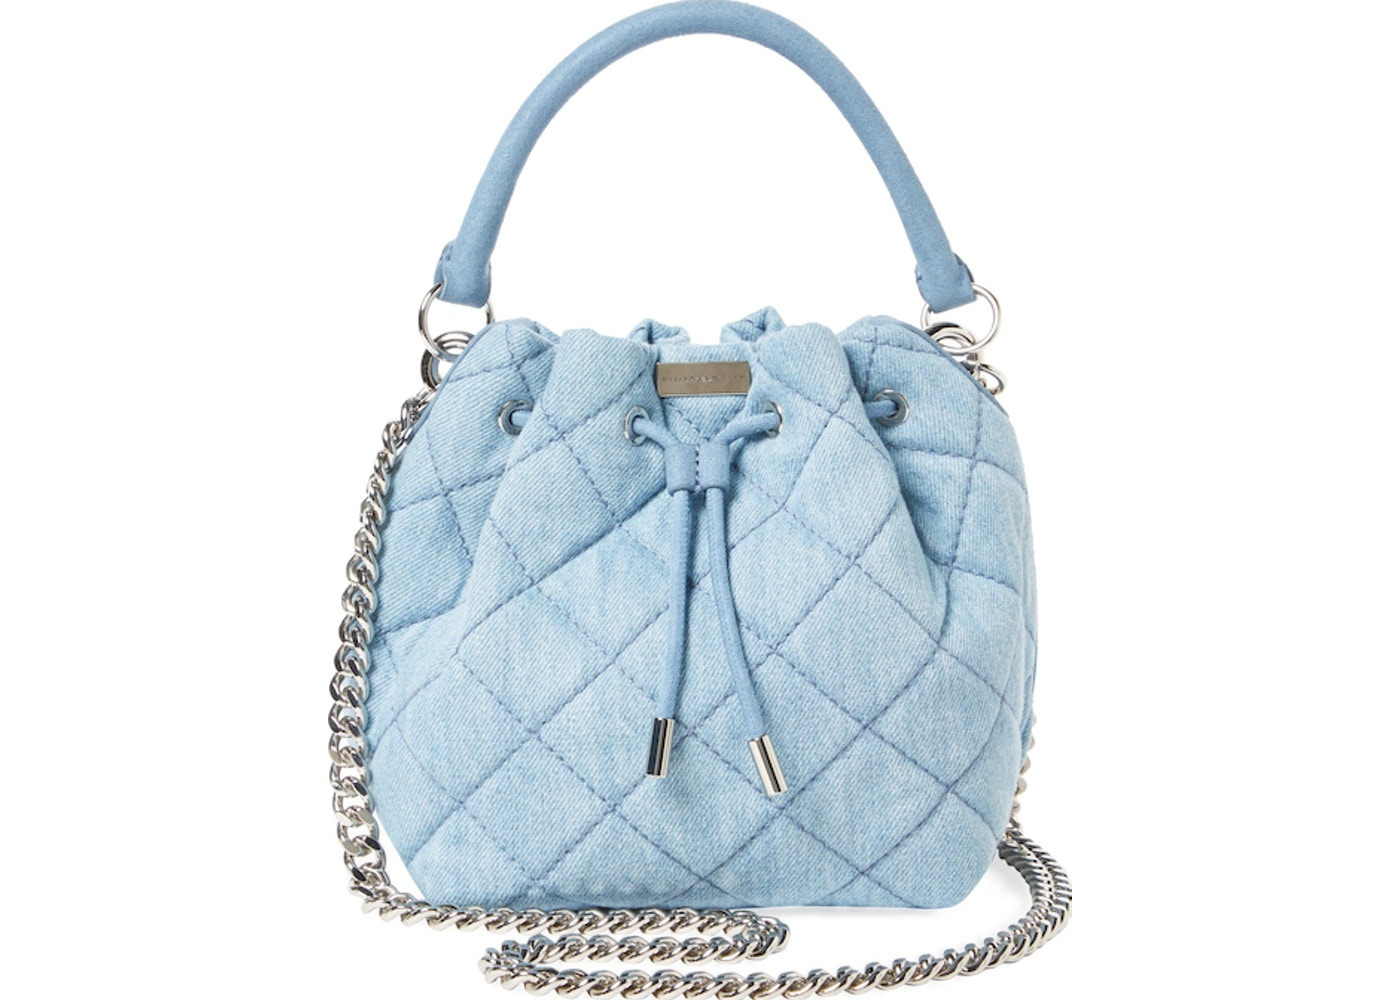 ddfea9cb7471 Stella McCartney Bucket Bag Falabella Quilted Blue. Quilted Blue